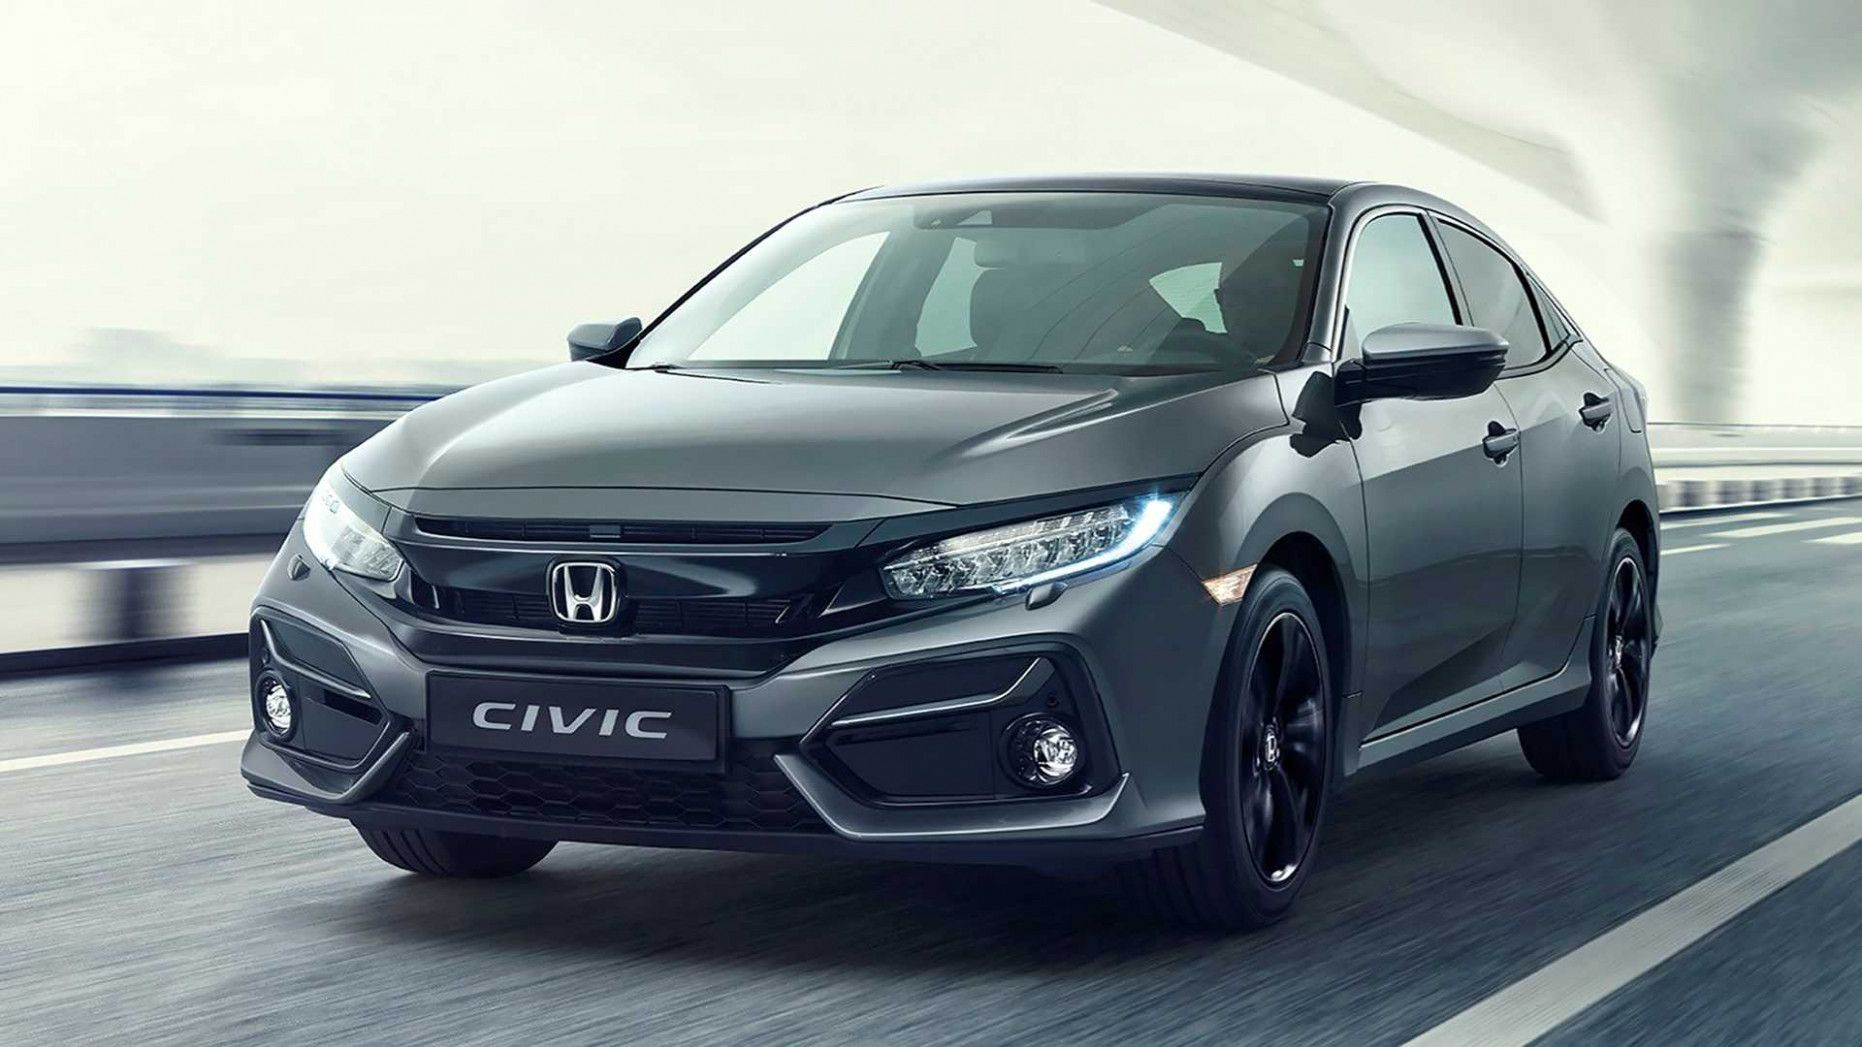 2020 Honda Civic In 2020 Honda Civic Honda Civic Hatch Honda Civic Si Coupe